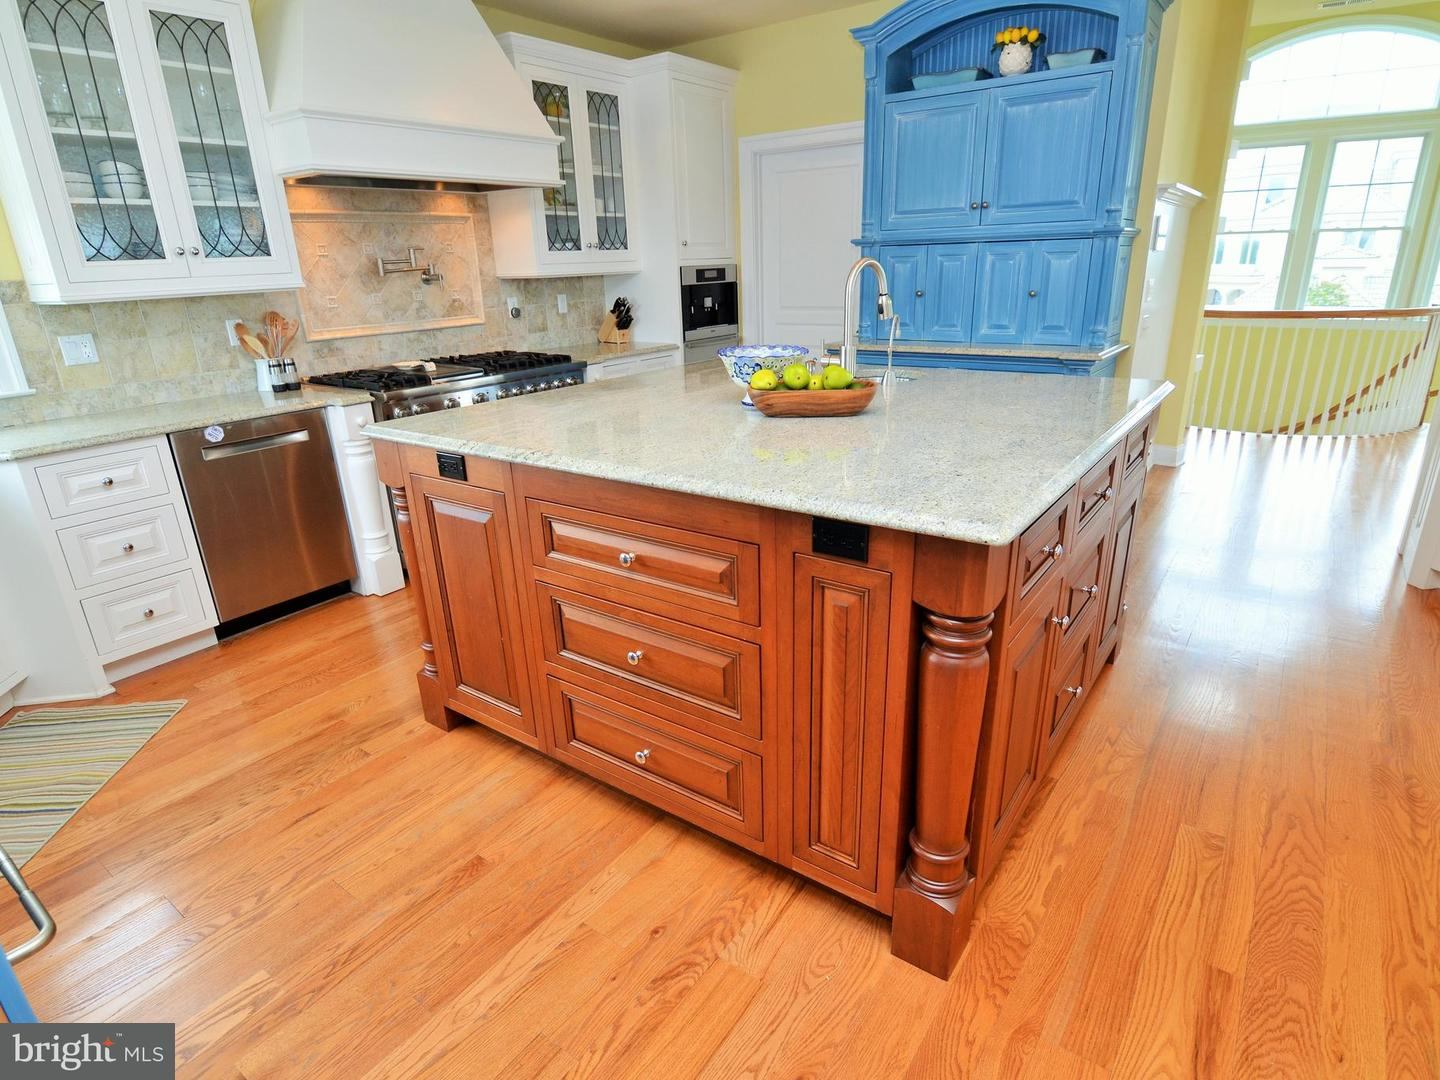 1002293530-300500807923-2018-09-25-15-08-25 31 Hall Ave | Rehoboth Beach, DE Real Estate For Sale | MLS# 1002293530  - 1st Choice Properties